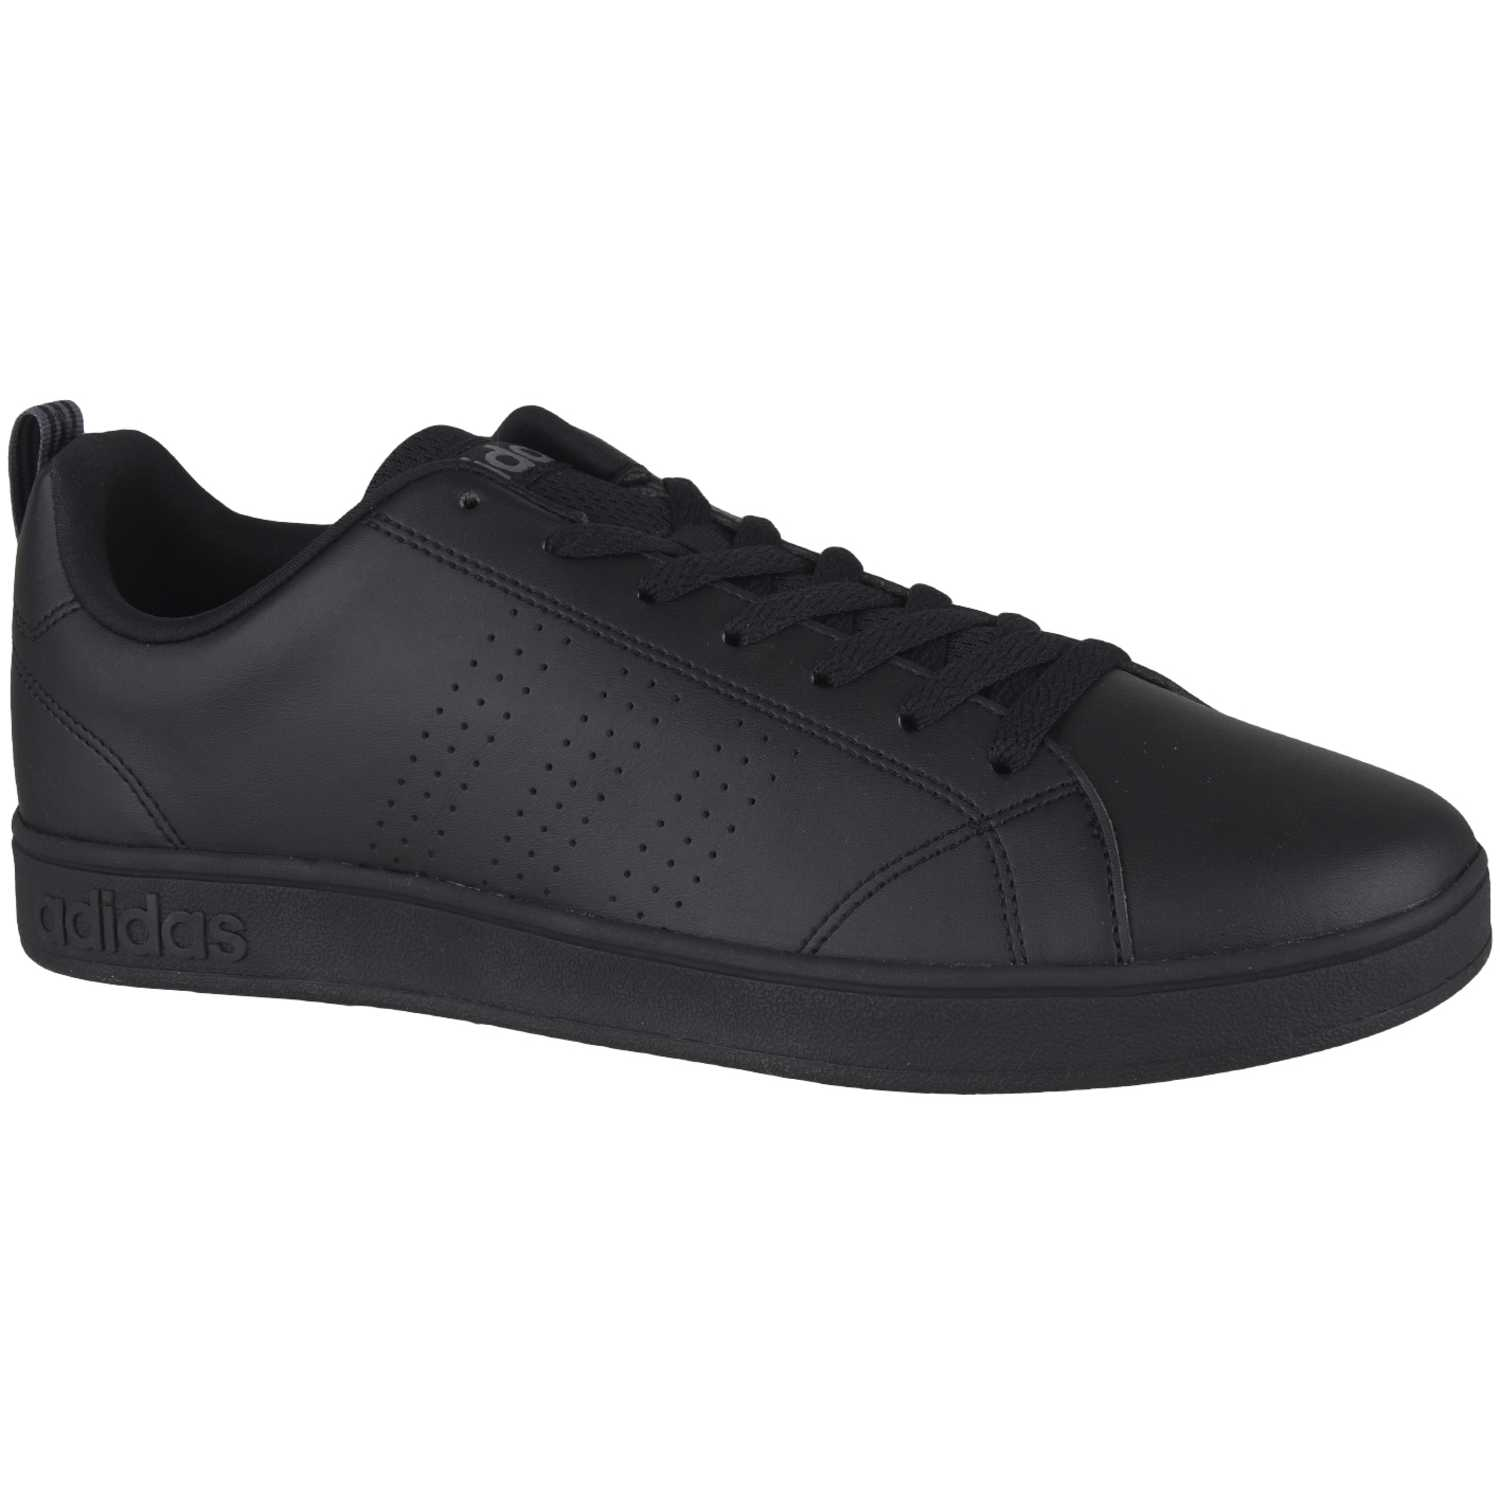 adidas NEO vs advantage cl Negro Walking